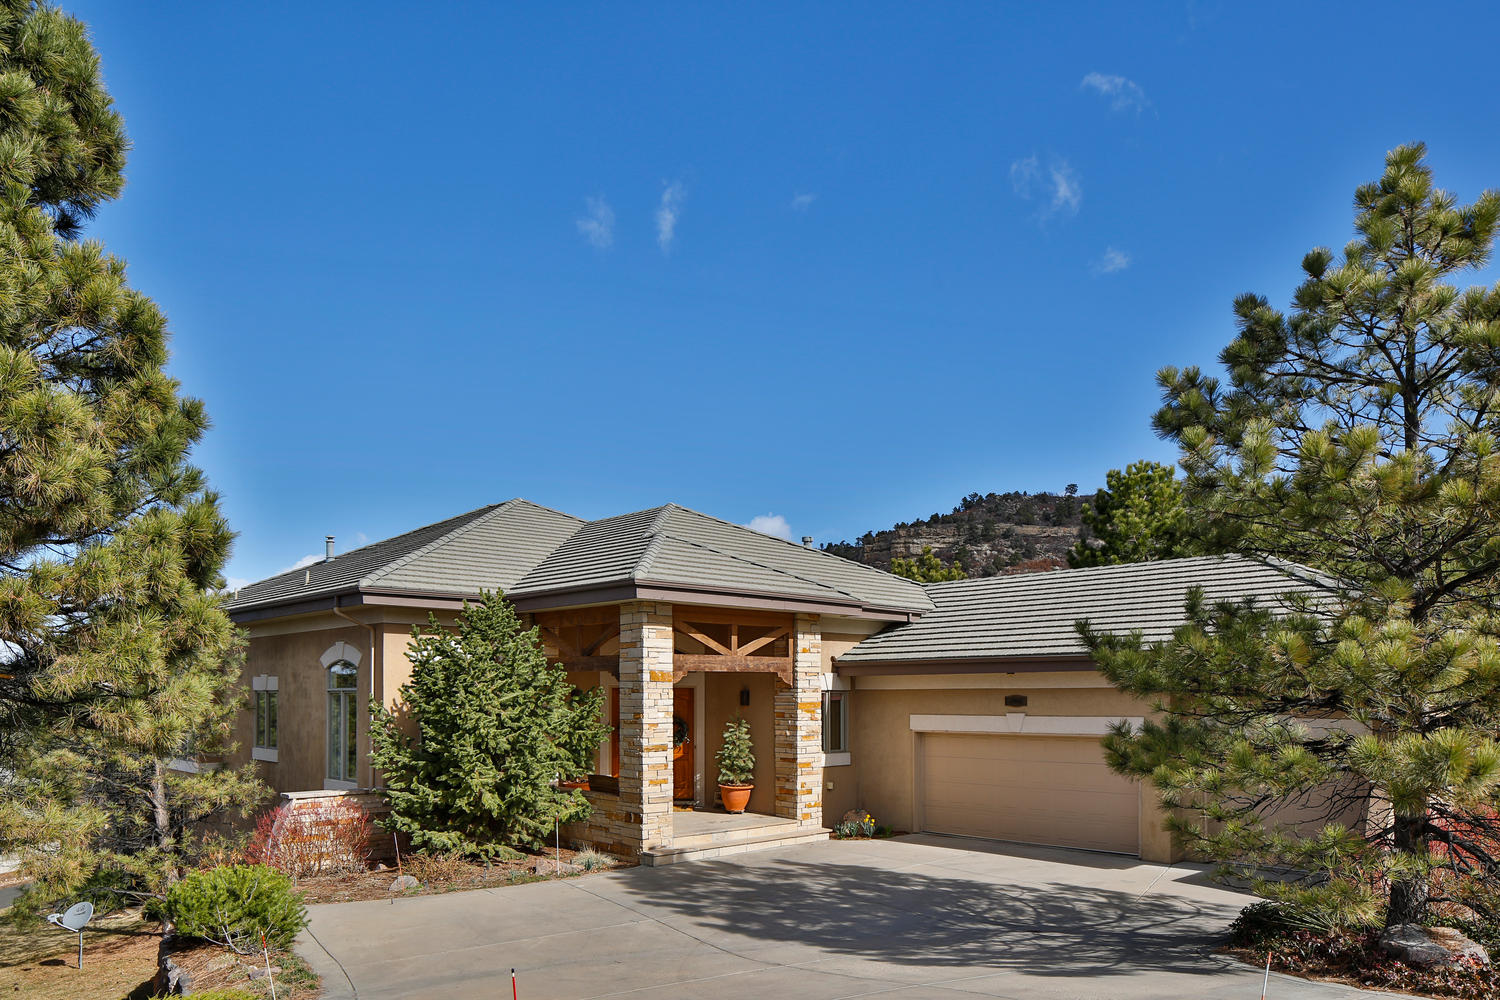 Single Family Home for Sale at 2902 Fairway View Ct Castle Pines Village, Castle Rock, Colorado, 80108 United States